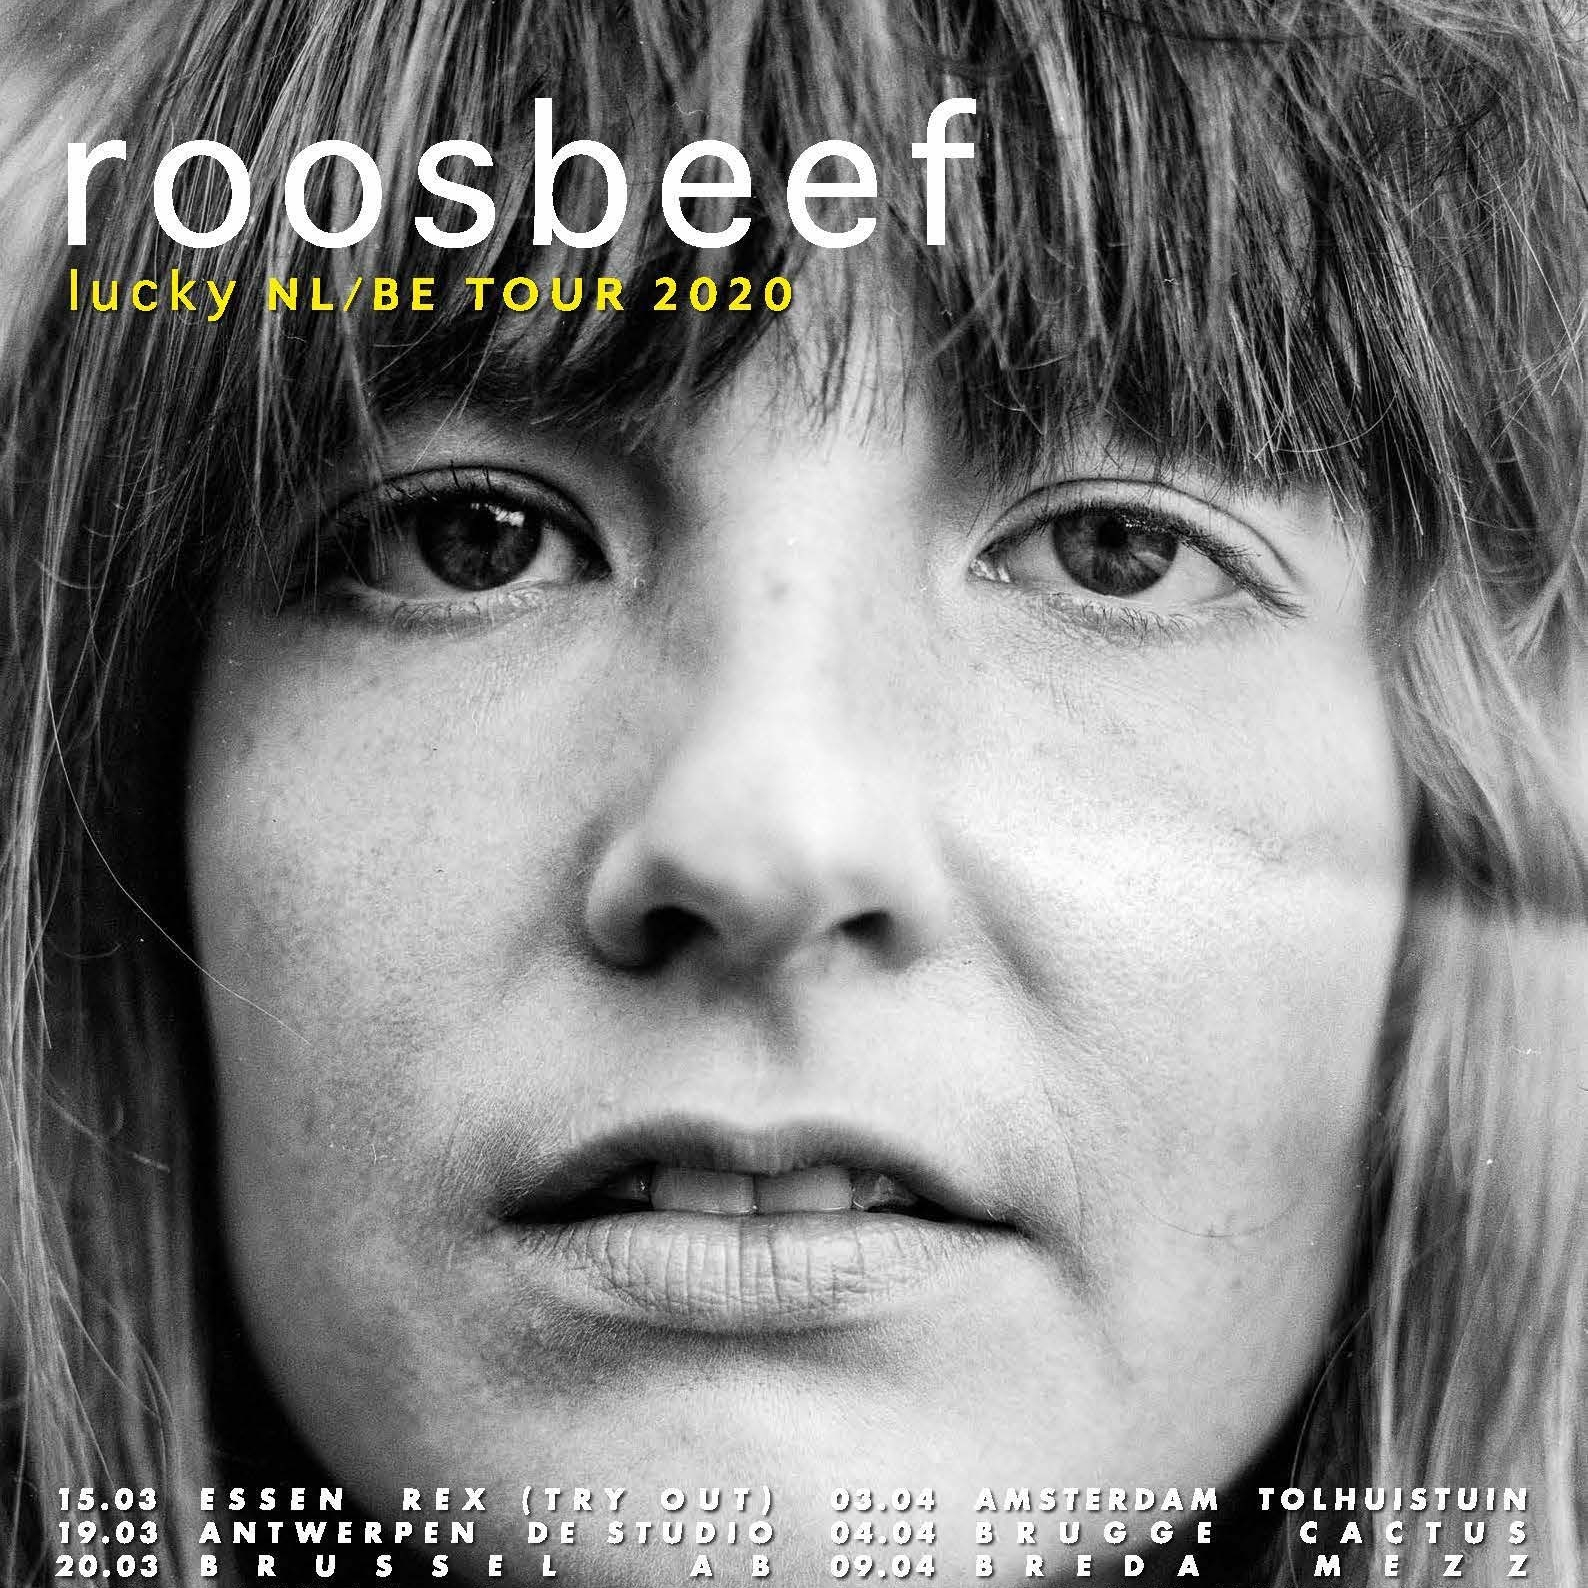 Poster Roosbeef - lucky tour